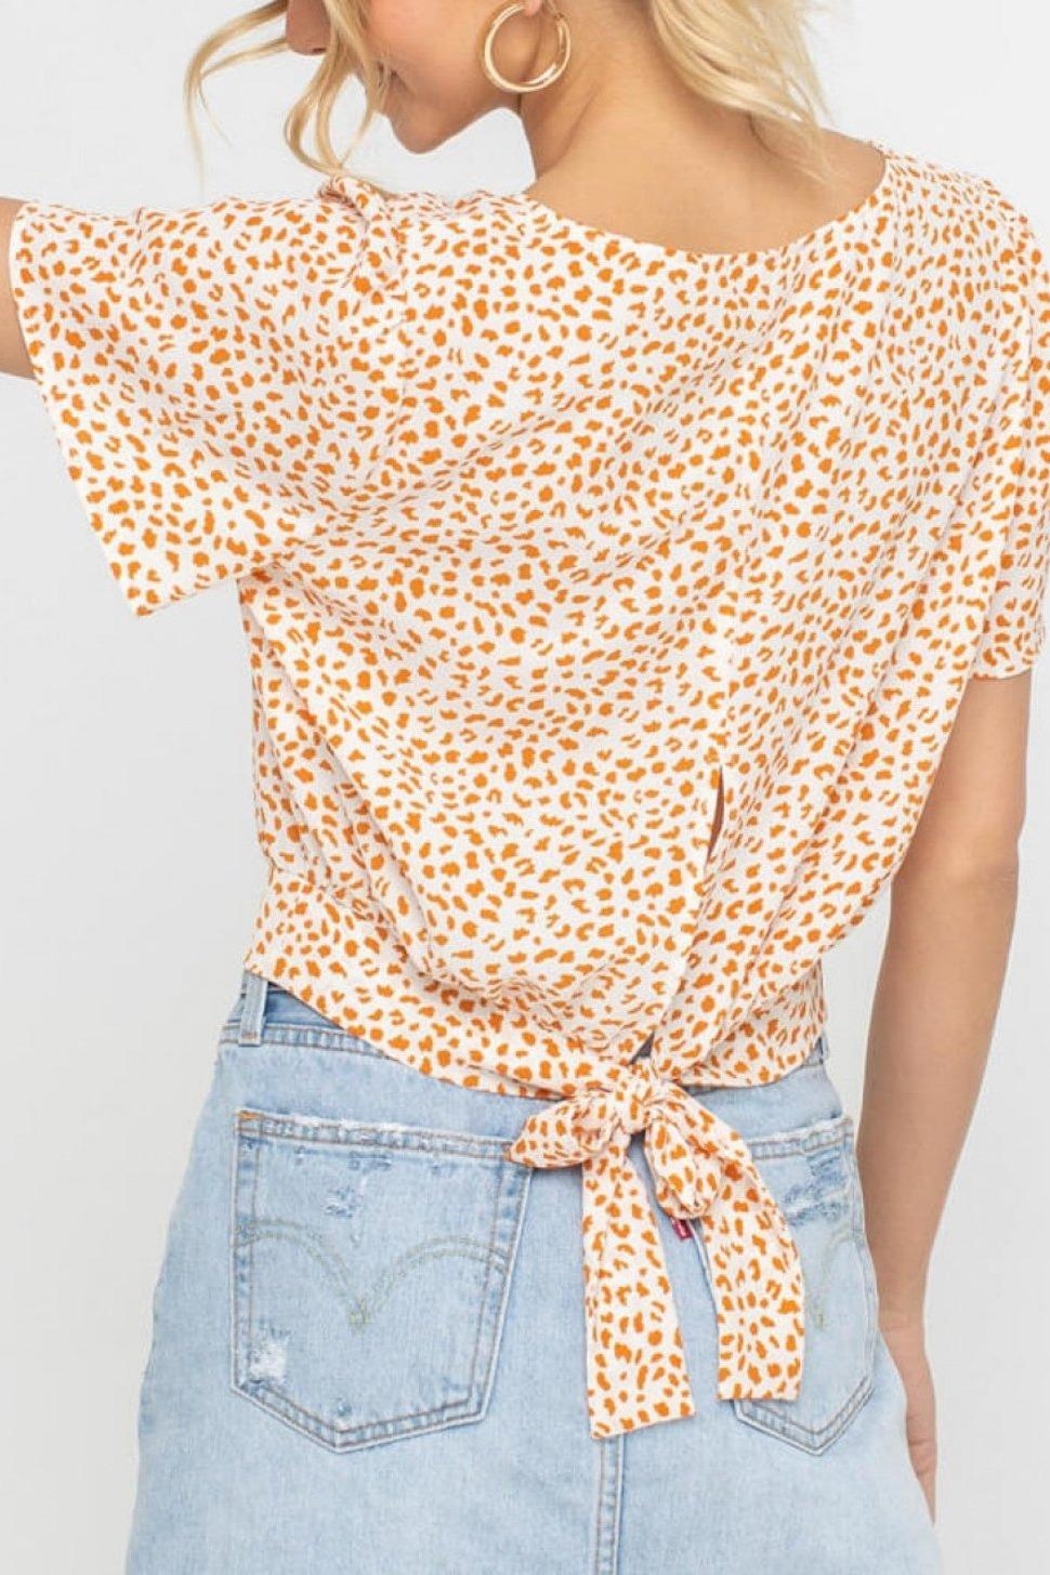 Lush Clothing  Tangerine Dotted Back-Tie-Top - Front Full Image